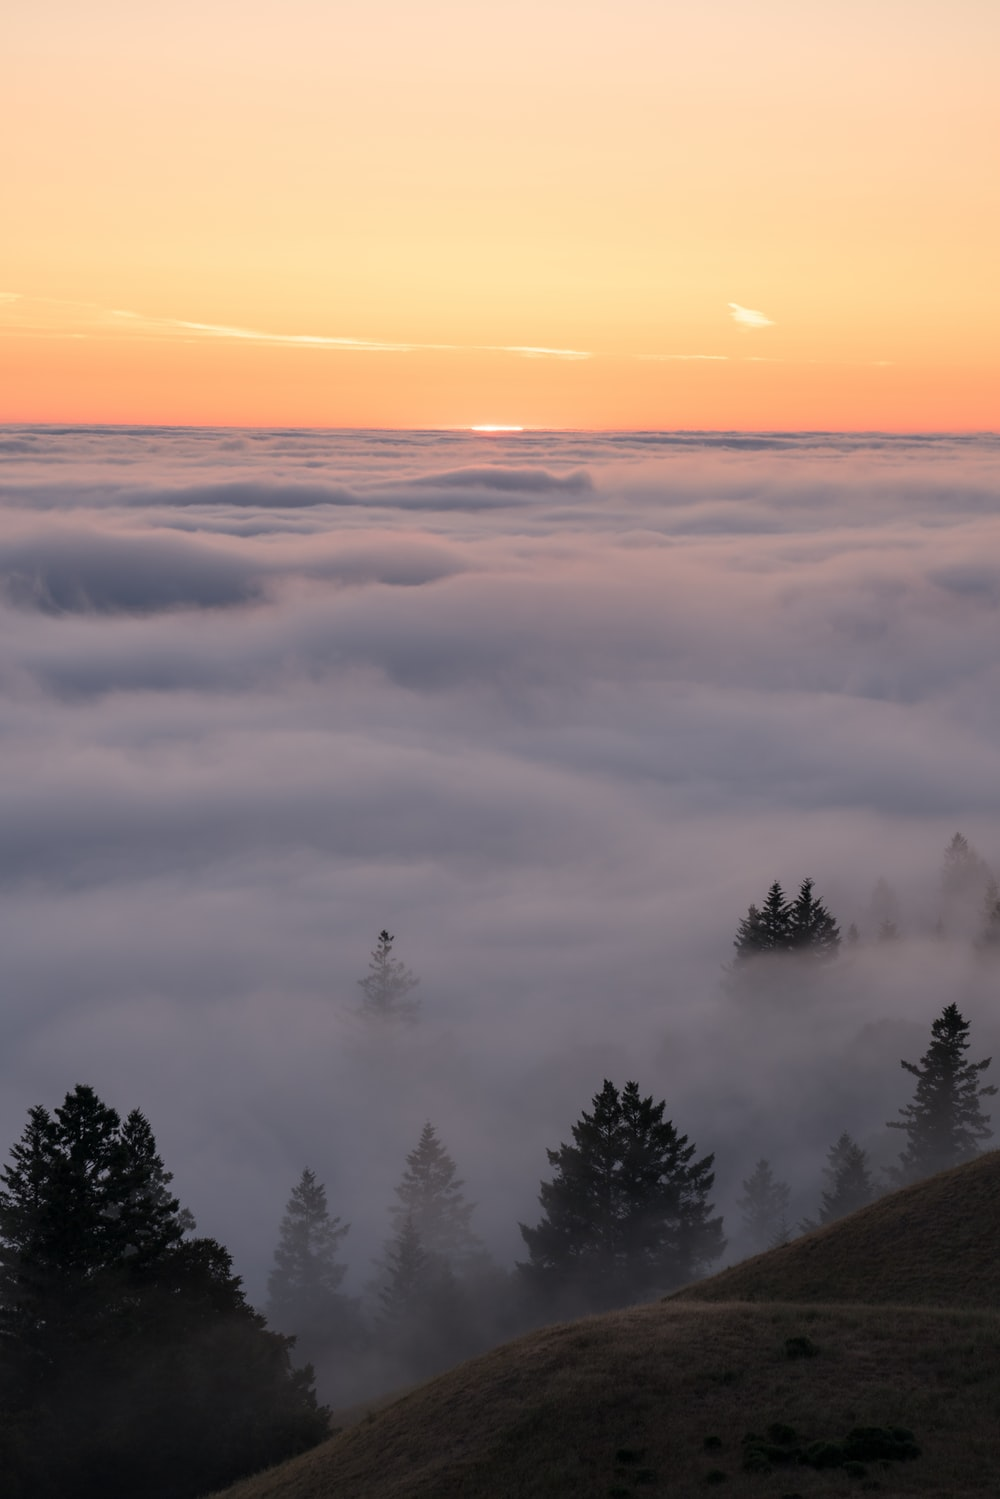 green trees covered by fog during daytime